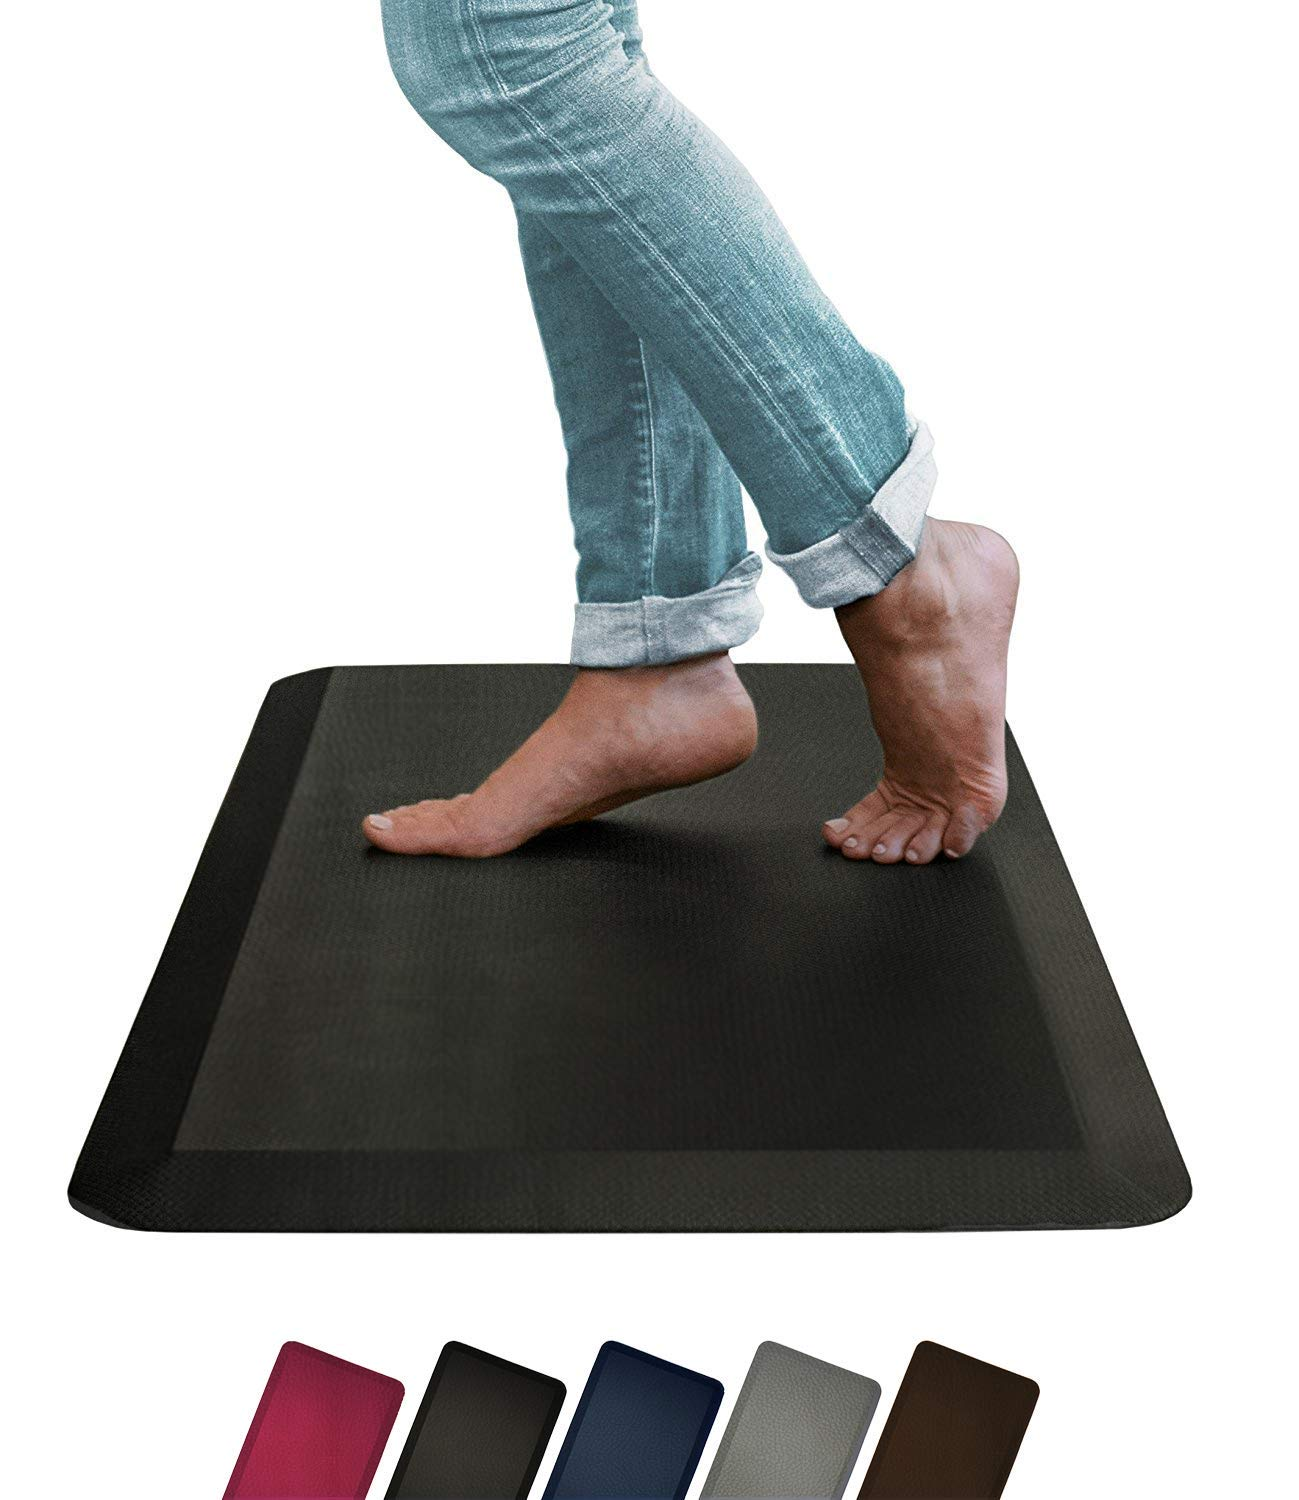 Oasis by Sky Mats, Leather Grain Comfort Anti Fatigue Mat & Kitchen Rug, 5 Colors and 3 Sizes, Perfect for Kitchens and Standing Desks (20x32x3/4-Inch, Black)